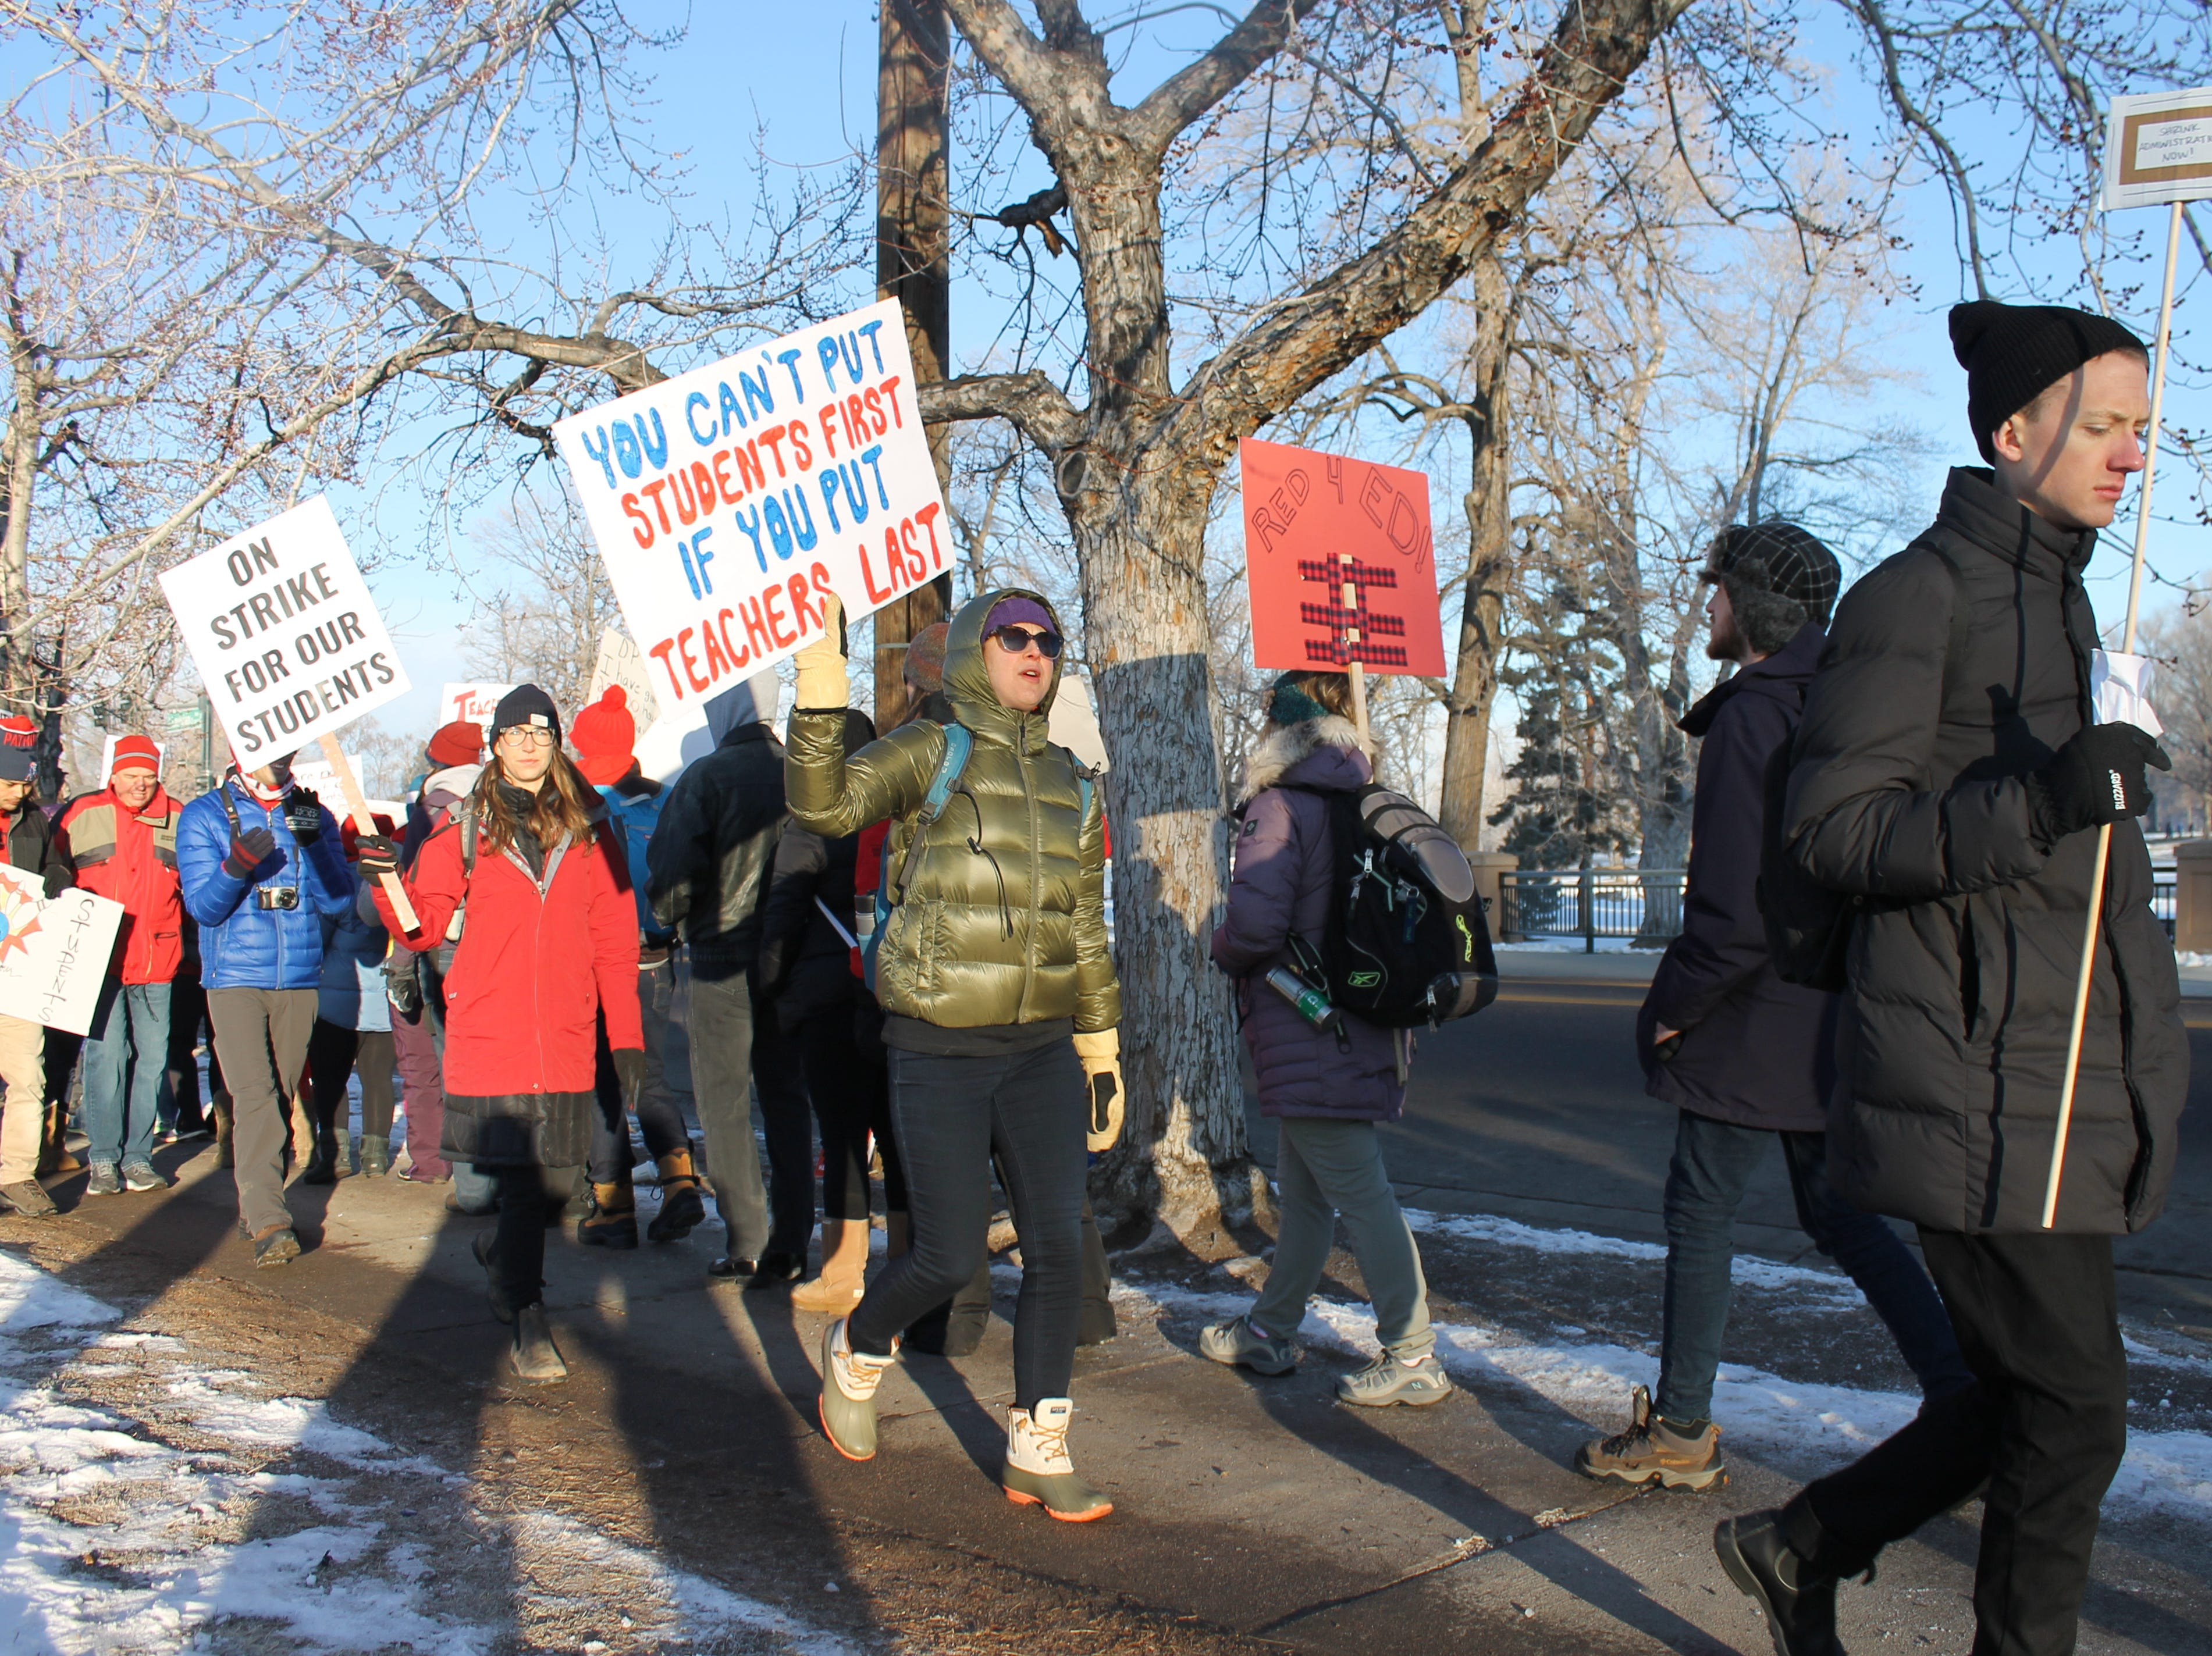 Thousands of teachers braved the cold Monday to picket outside their schools. Teachers in Denver Public Schools are calling for better pay and a more fair compensation system. Teachers have been in negotiations with the district for 15 months. Negotiations can resume Tuesday at the earliest.